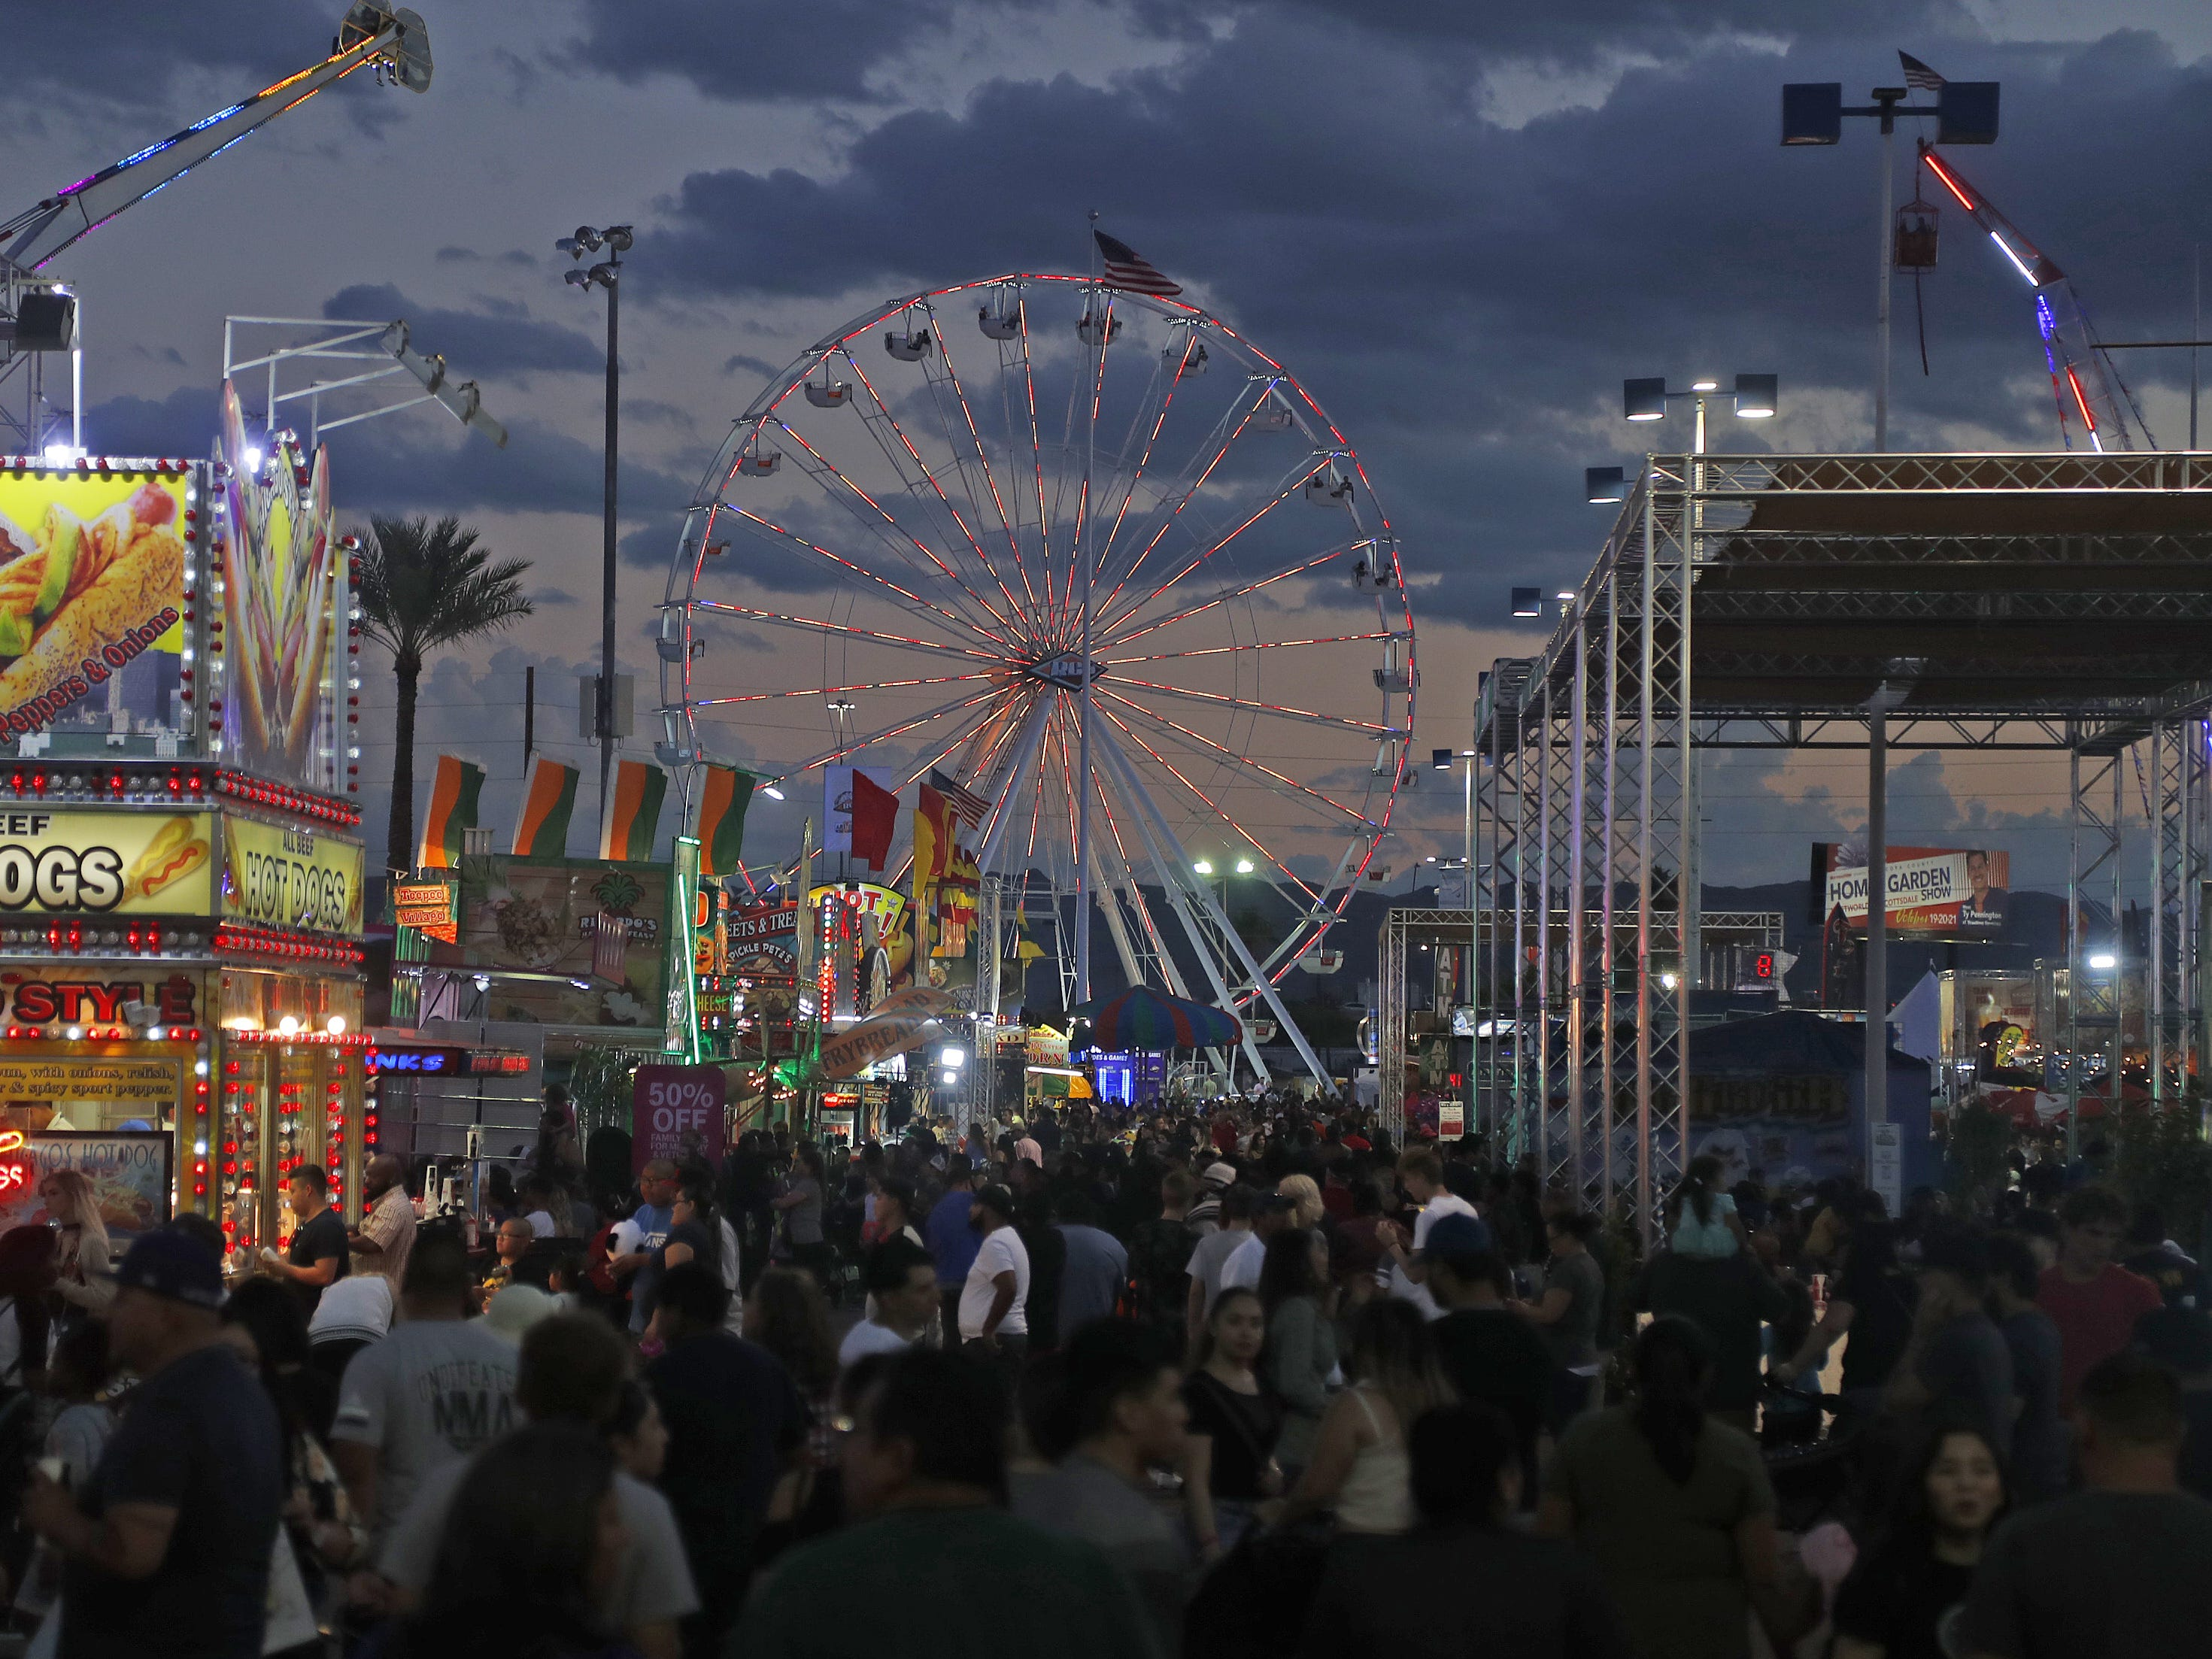 The ferris wheel stands tall over the crowds at the Arizona State Fair in Phoenix, Ariz. on October 21, 2018.